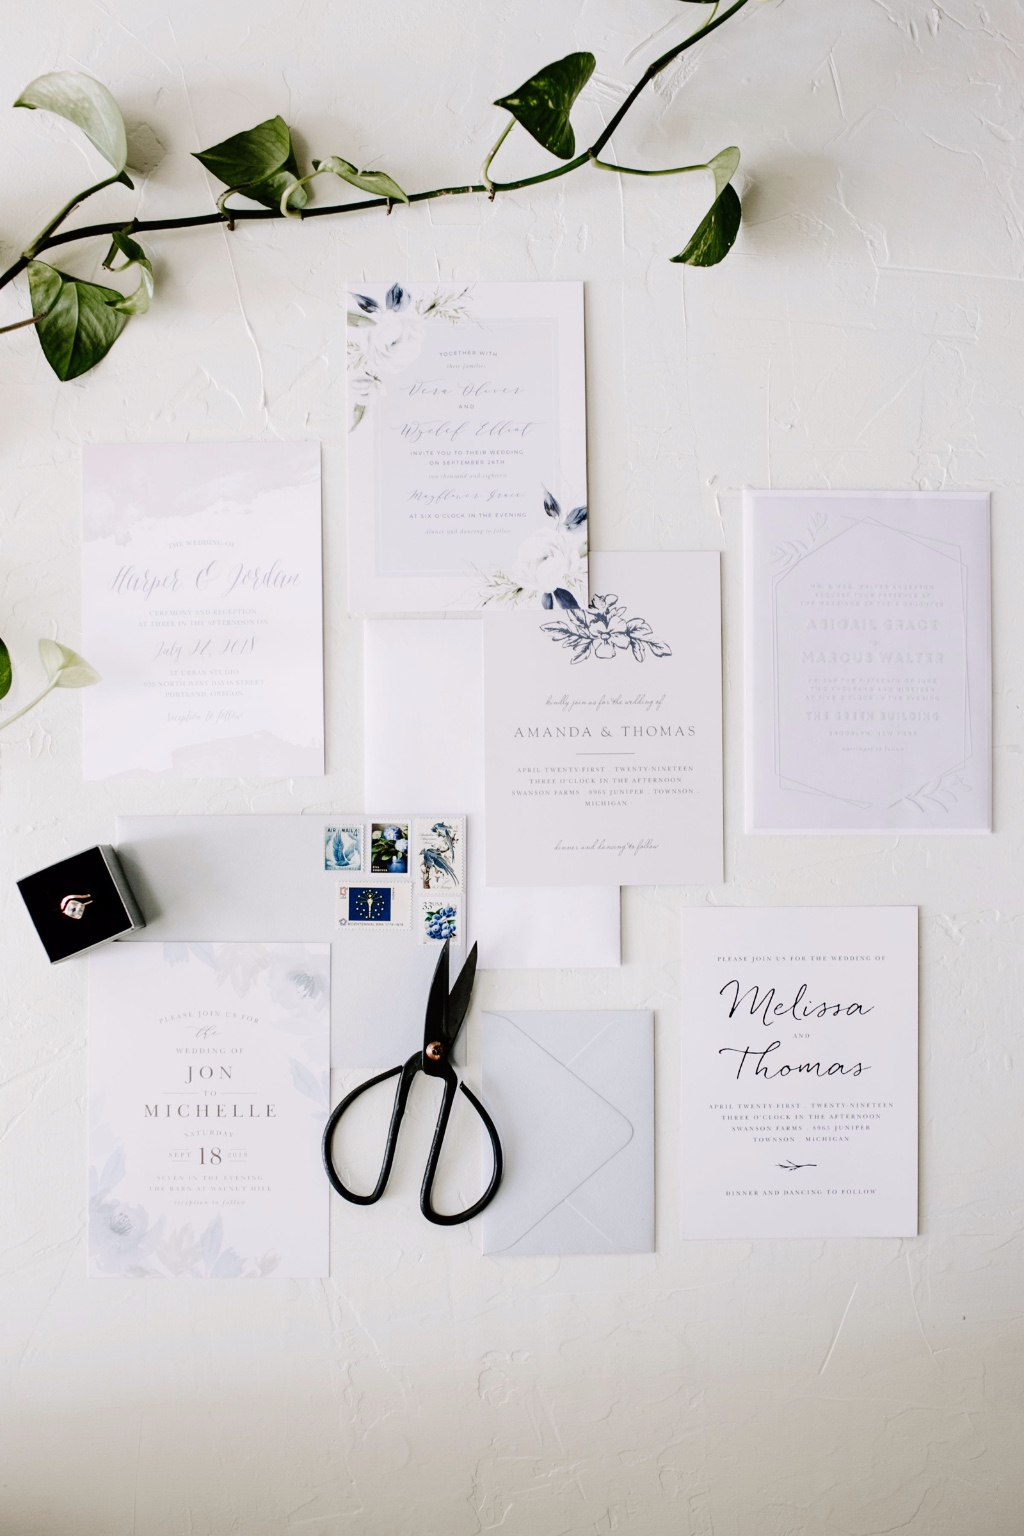 With over 900 different wedding invitation designs, and over 180 colors to customize with, there's no reason your dreams can't become